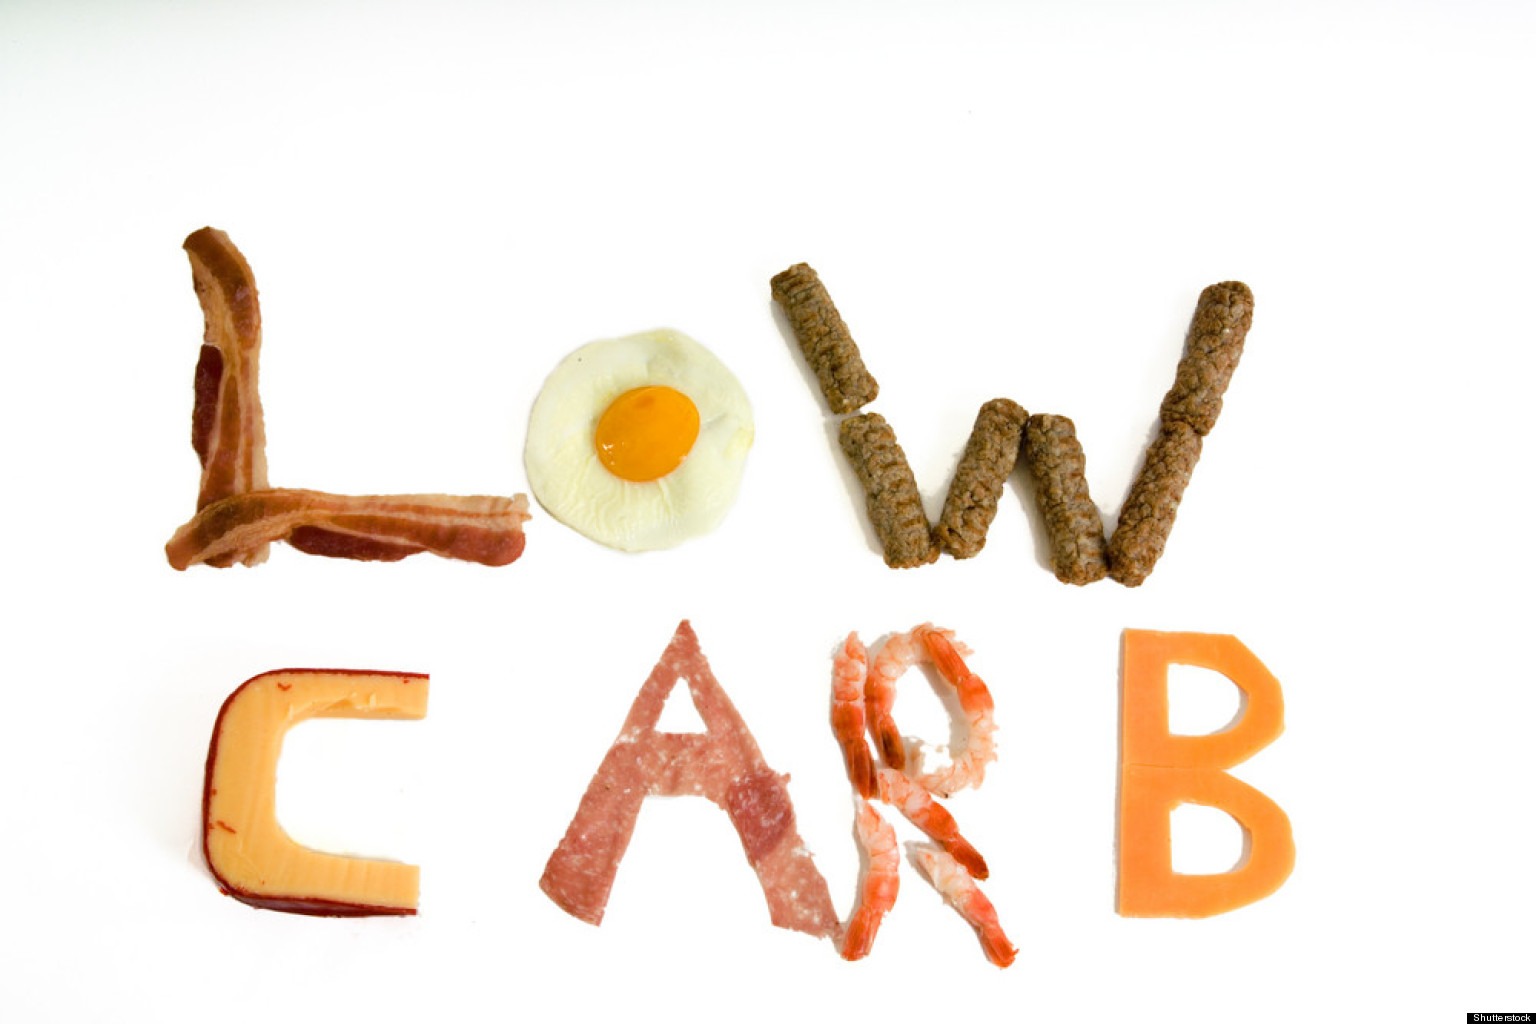 Download this Carbs Workout Facebook picture